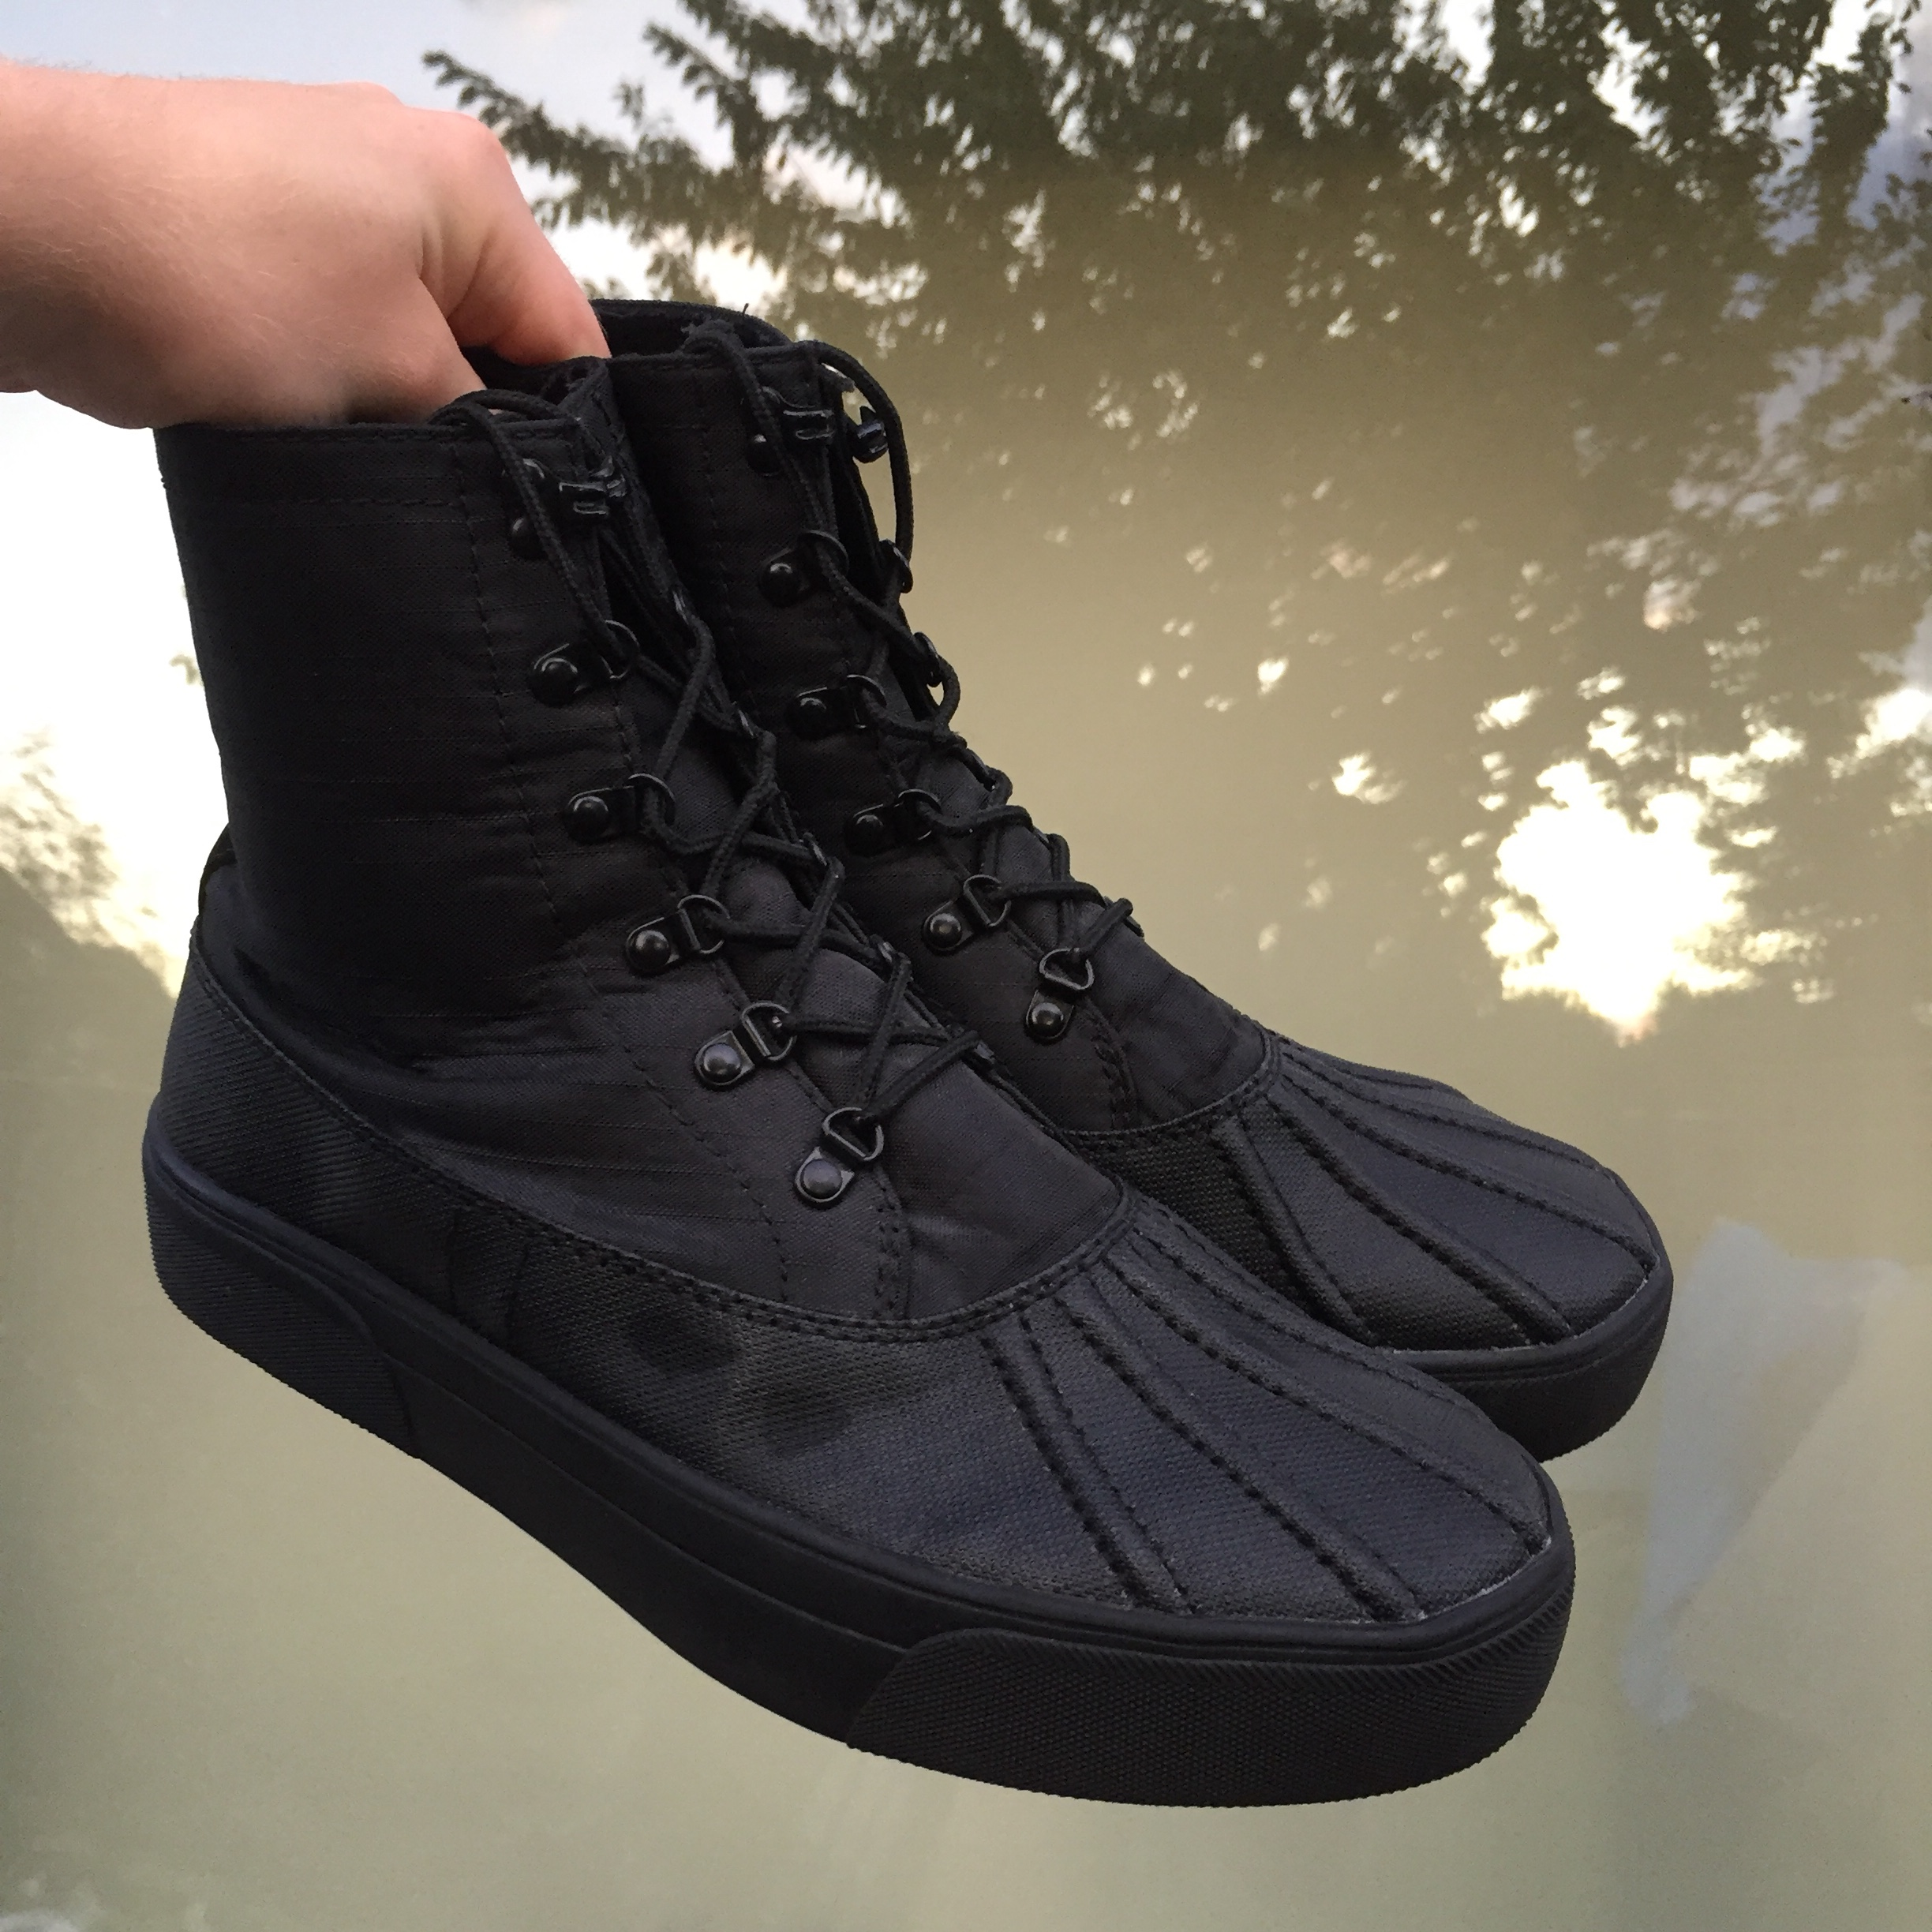 Urban Outfitters Duck Sneakerboot Black